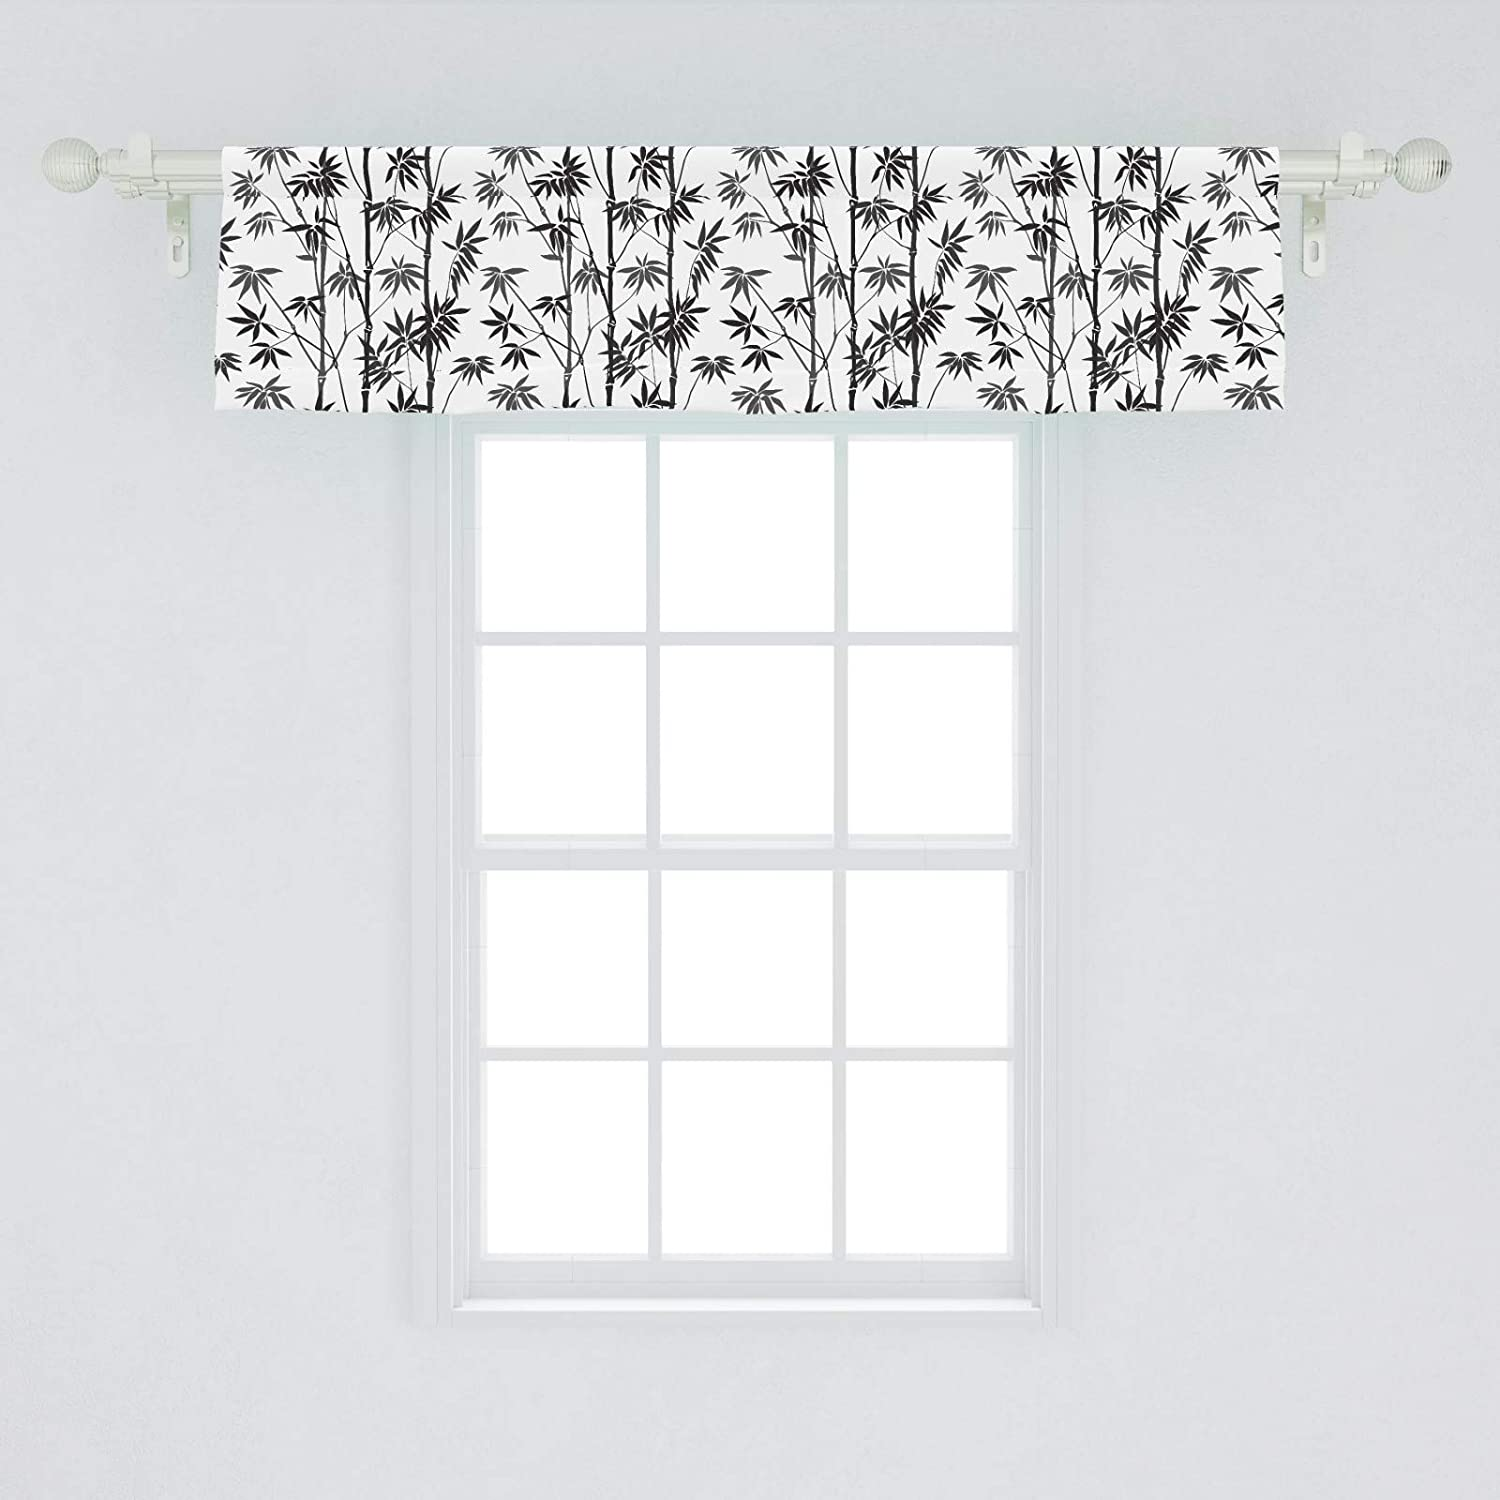 "Lunarable Bamboo Window Valance, Monochrome Exotic Trees Pattern Flora Garden Japanese Nature, Curtain Valance for Kitchen Bedroom Decor with Rod Pocket, 54"" X 12"", White and Black"